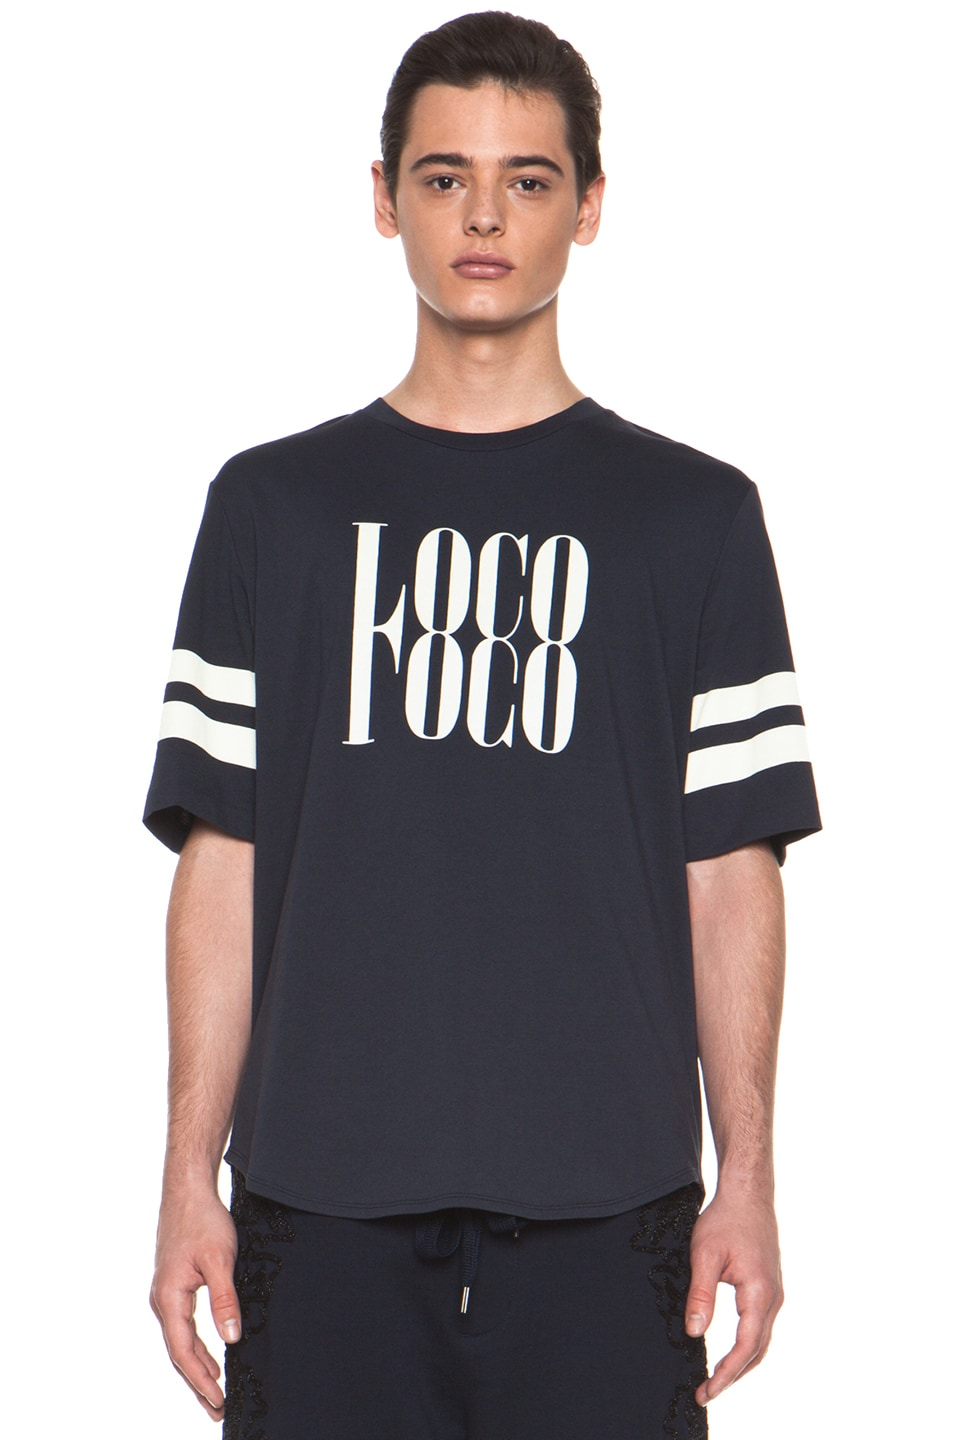 Image 1 of 3.1 phillip lim 'Loco' Tee in Midnight